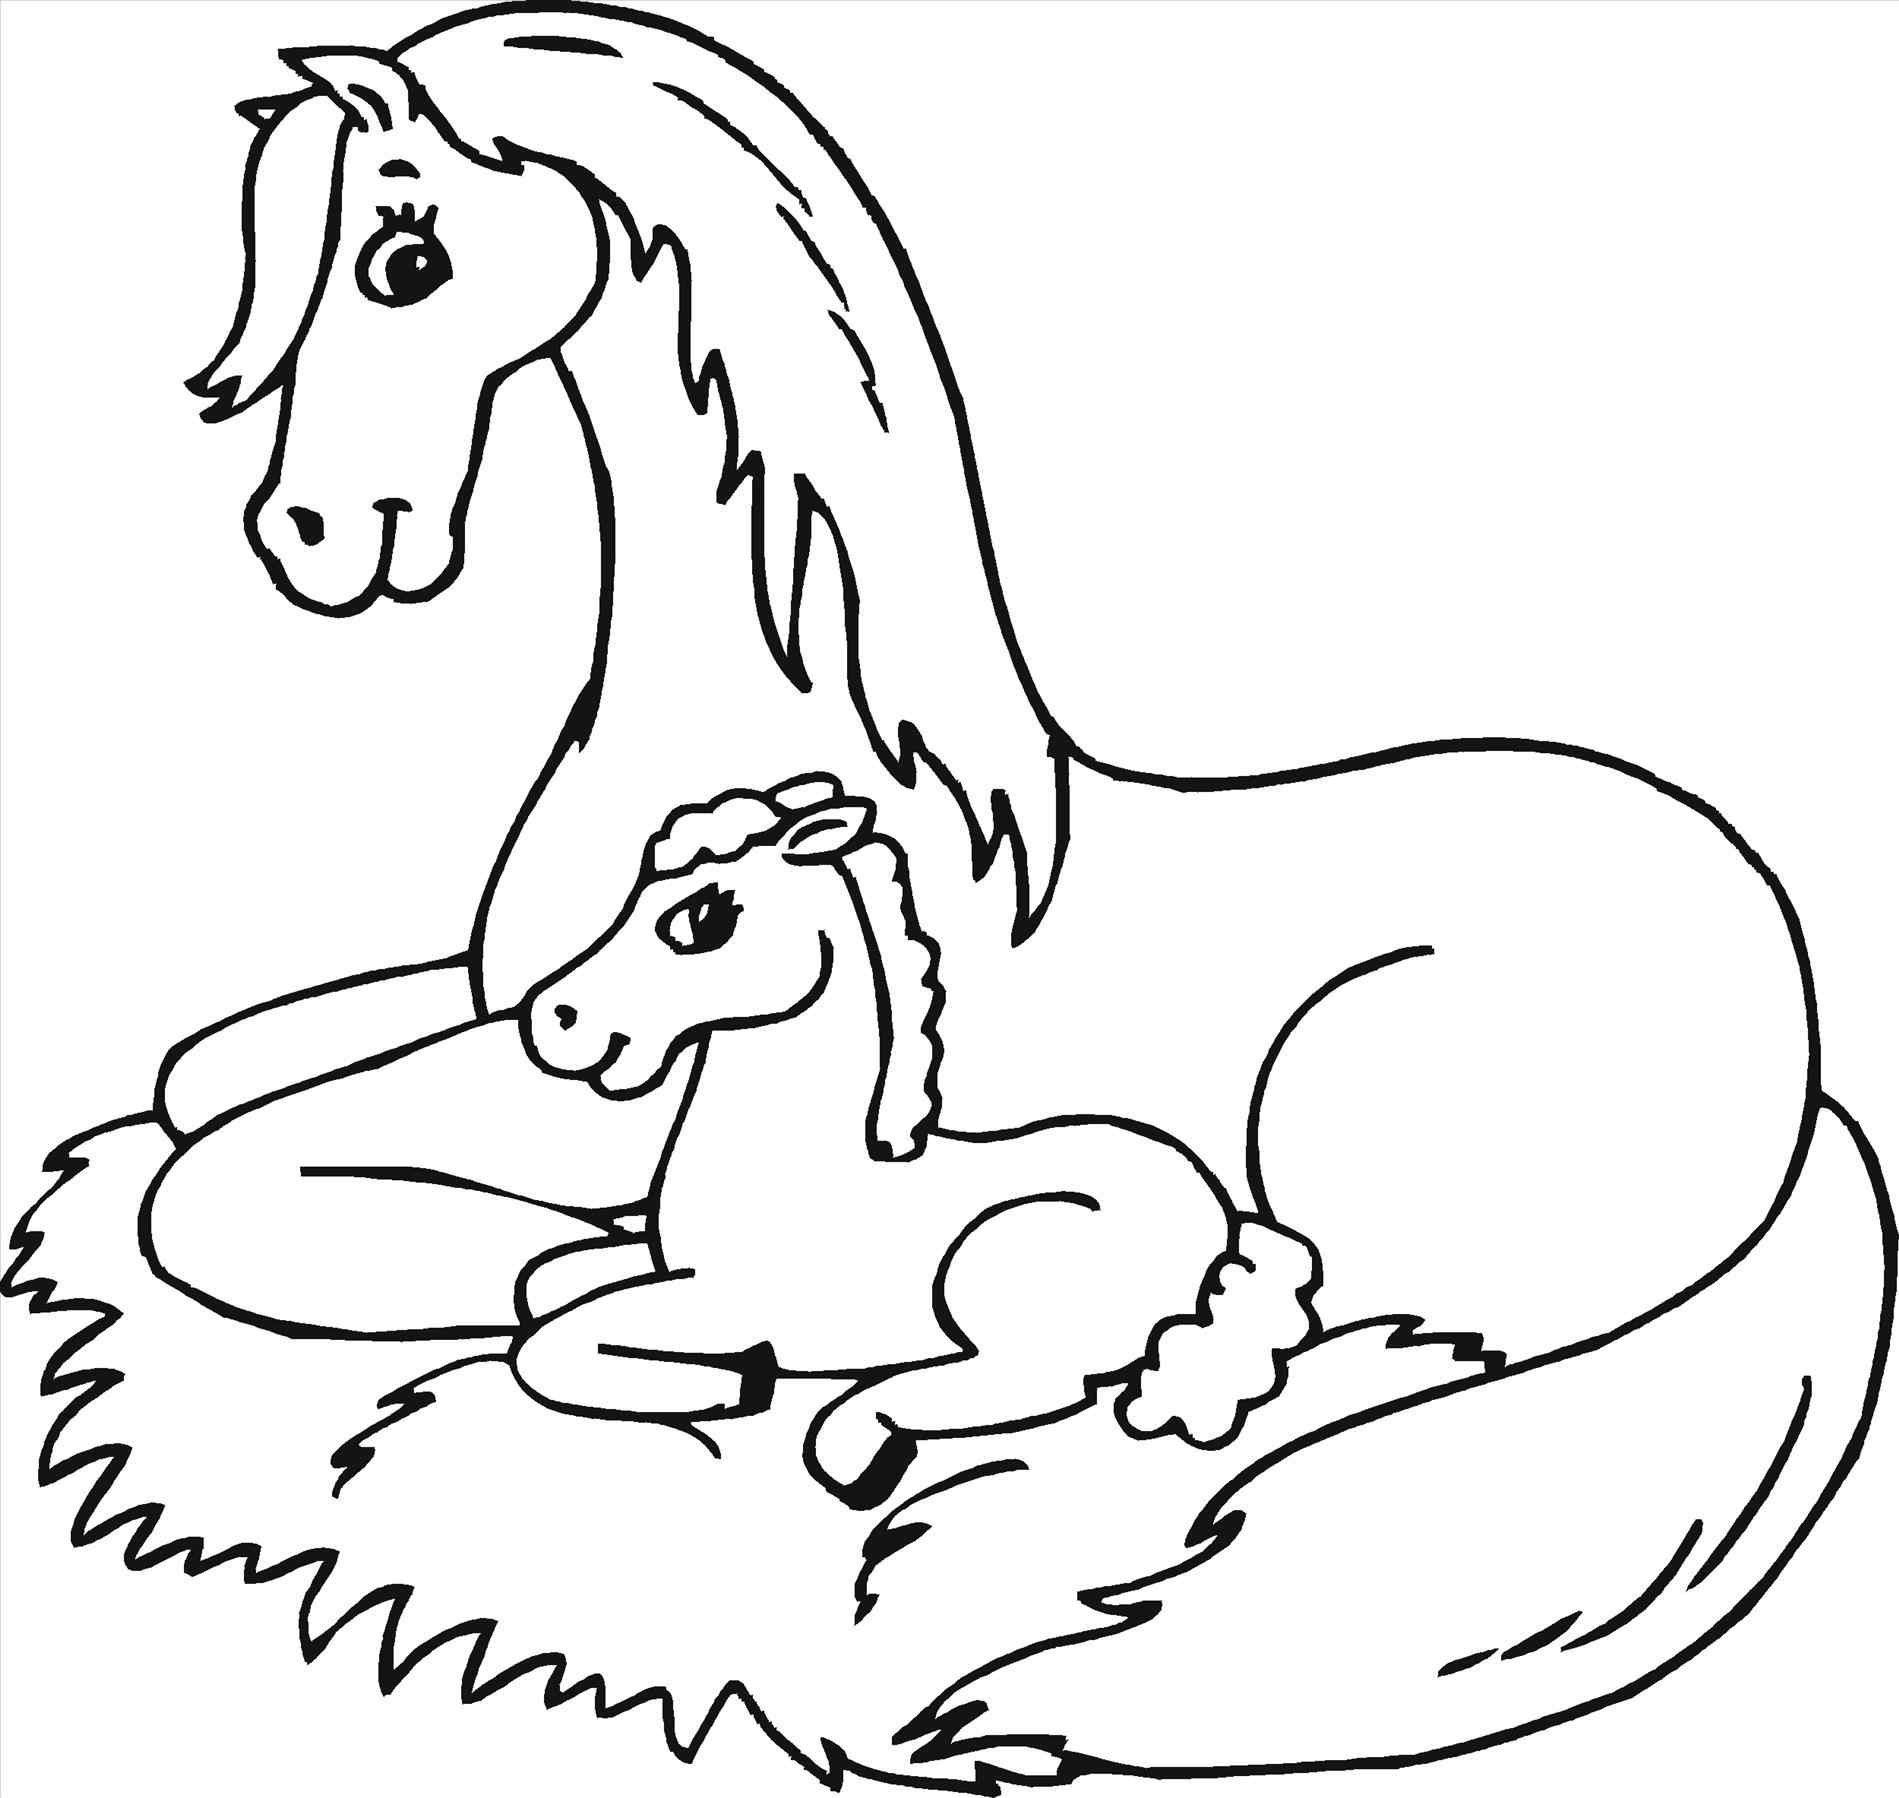 Coloring Pages Of Baby Horses From The Thousand Photographs On The Net Regarding Coloring Pages Of Baby Horses Choices The Top Series Along With Greatest Qu